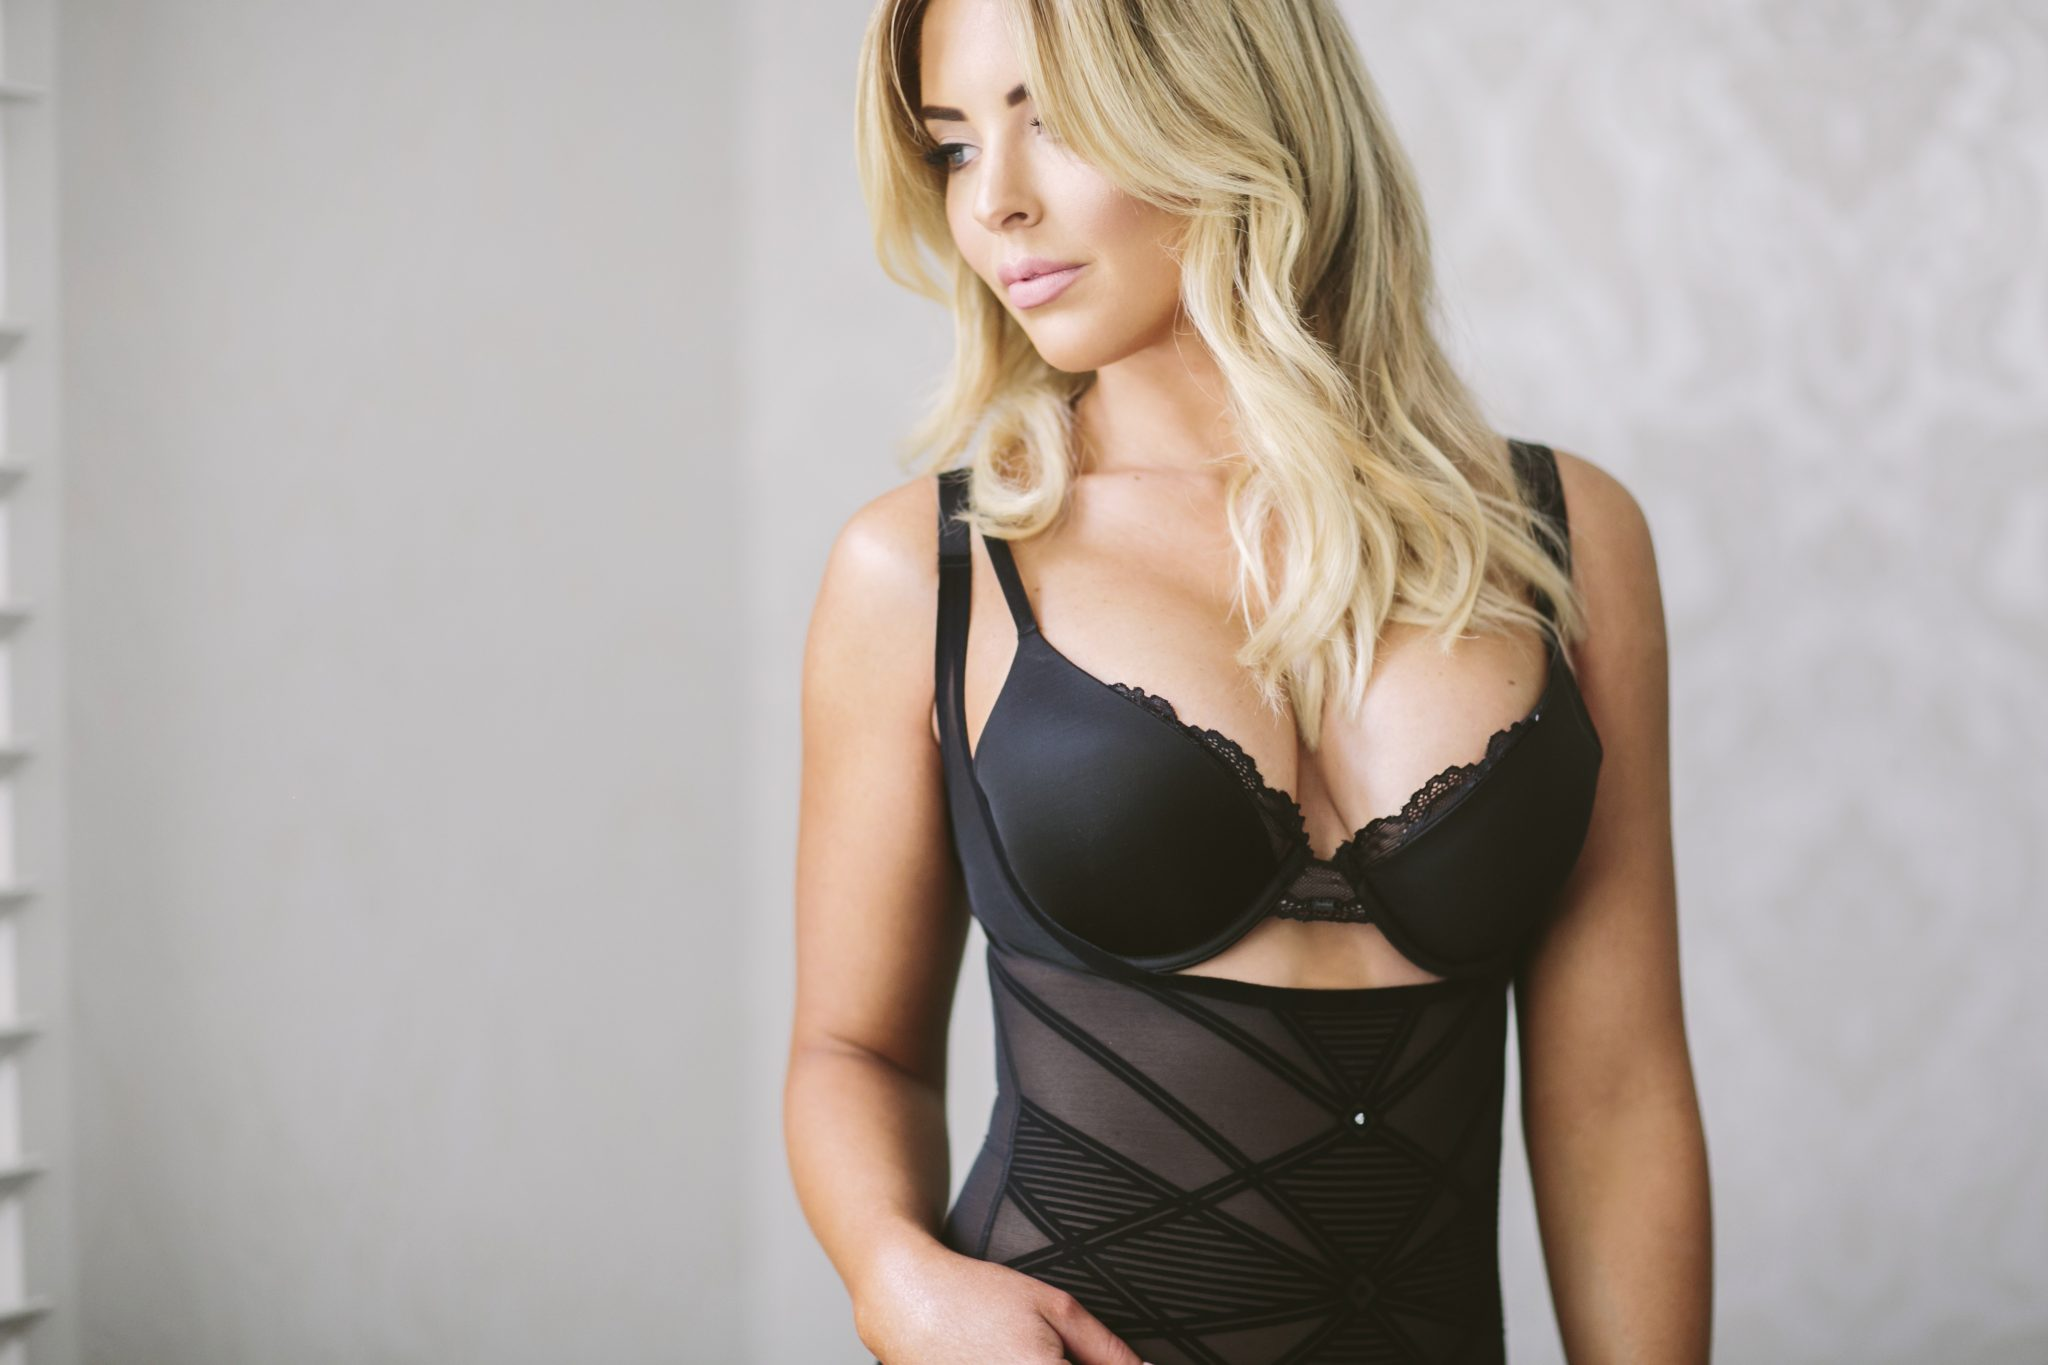 SARAH JANE YOUNG, LINGERIE, SHAPEWEAR, NANCY GANZ, NANCY GANZ AUSTRALIA, FASHION BLOGGER, MUMMY BLOGGER, POST-PARTUM SHAPEWEAR, SHEISSARAHJANE, NEIYOPHOTOGRAPHY